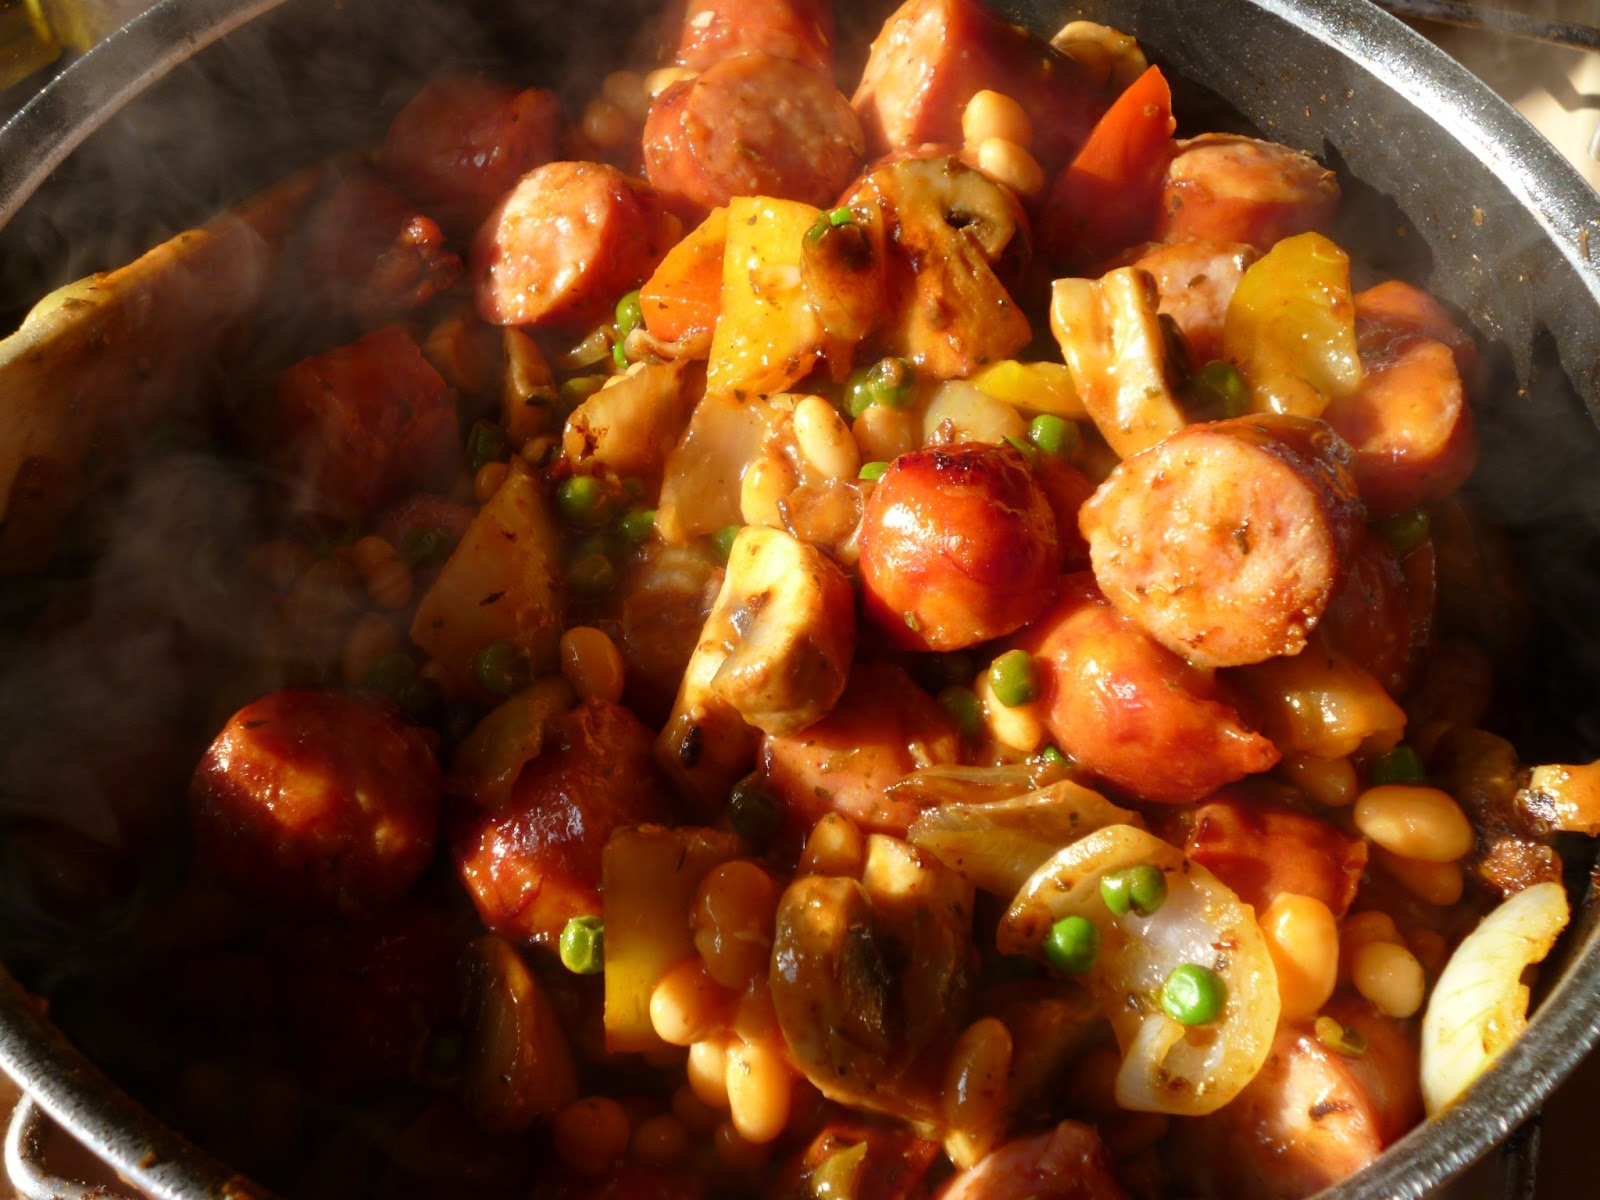 ... sausage recipes yummly chicken sausage and bean casserole with sage